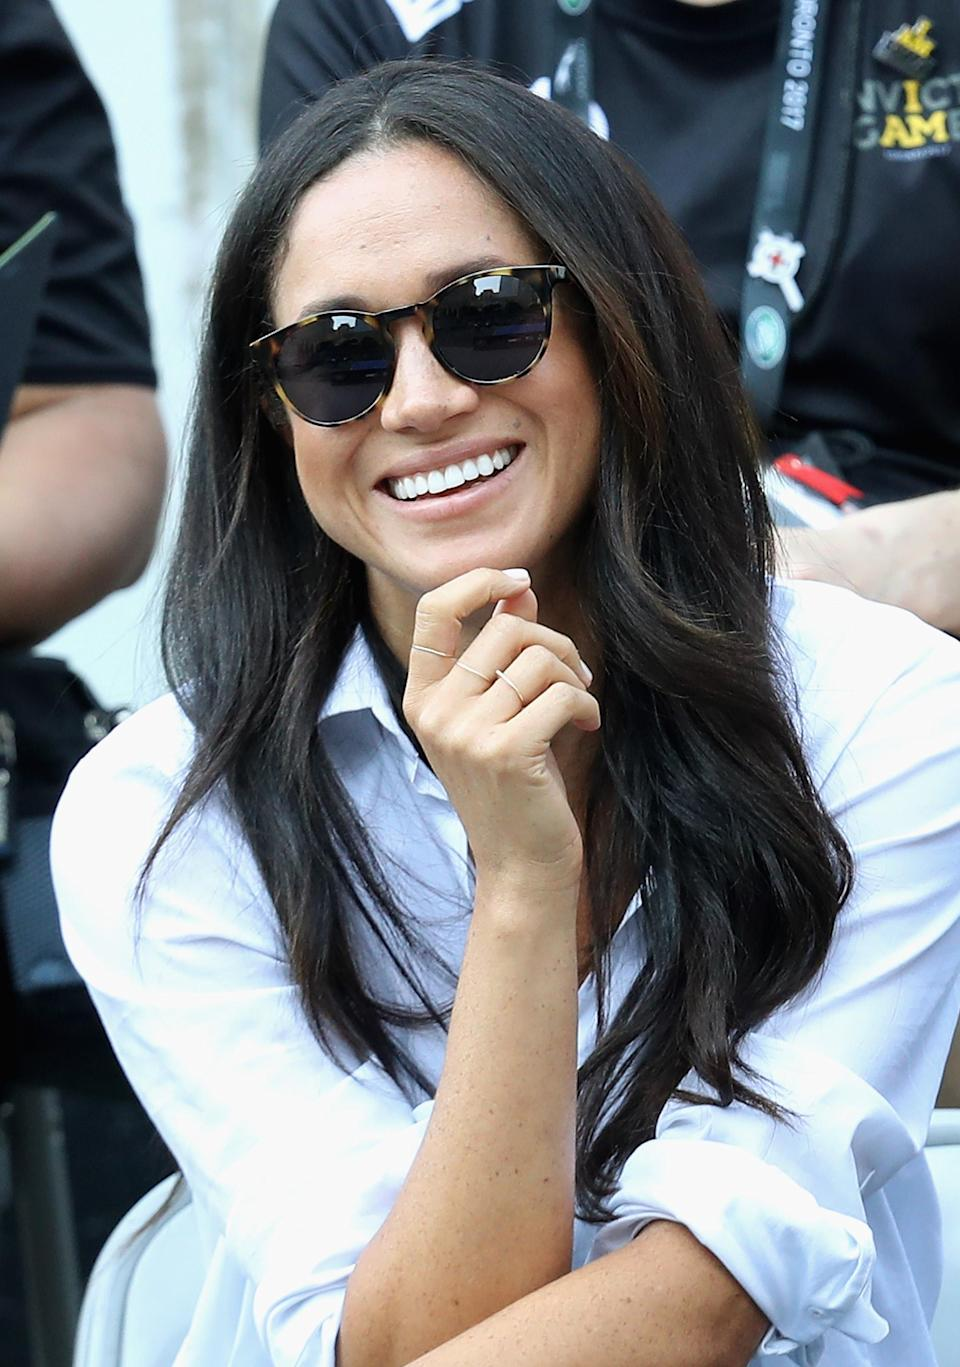 The designers of Meghan's sunglasses have made over £20,000 from that pair alone [Photo: Getty]